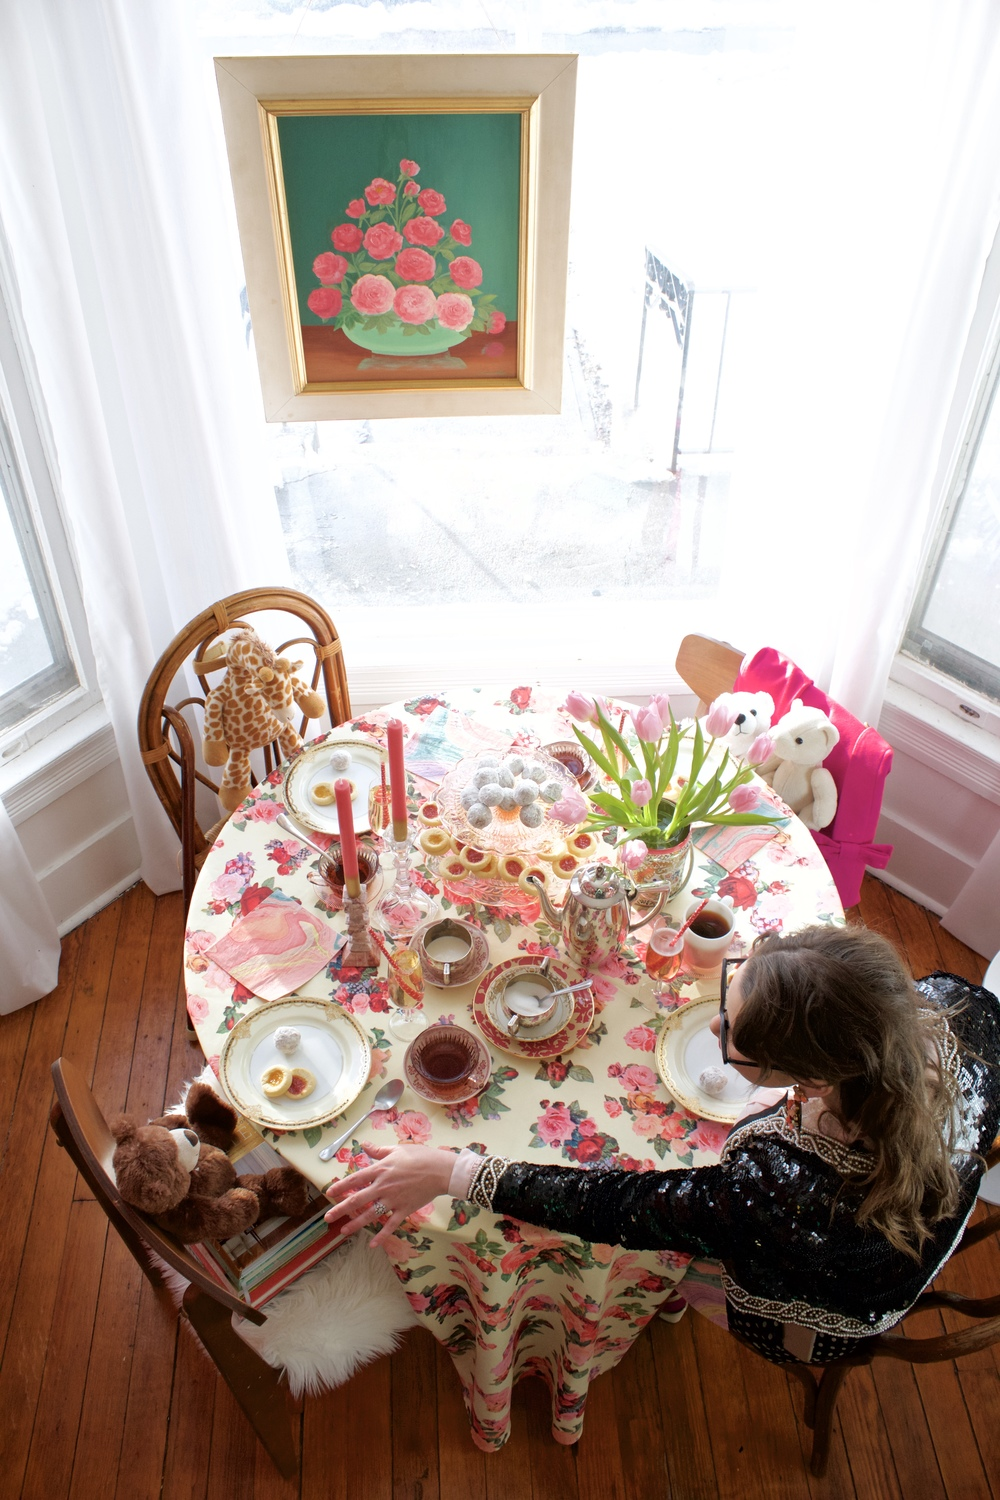 Grown-Up Valentine Tea Party with Stuffed Animals